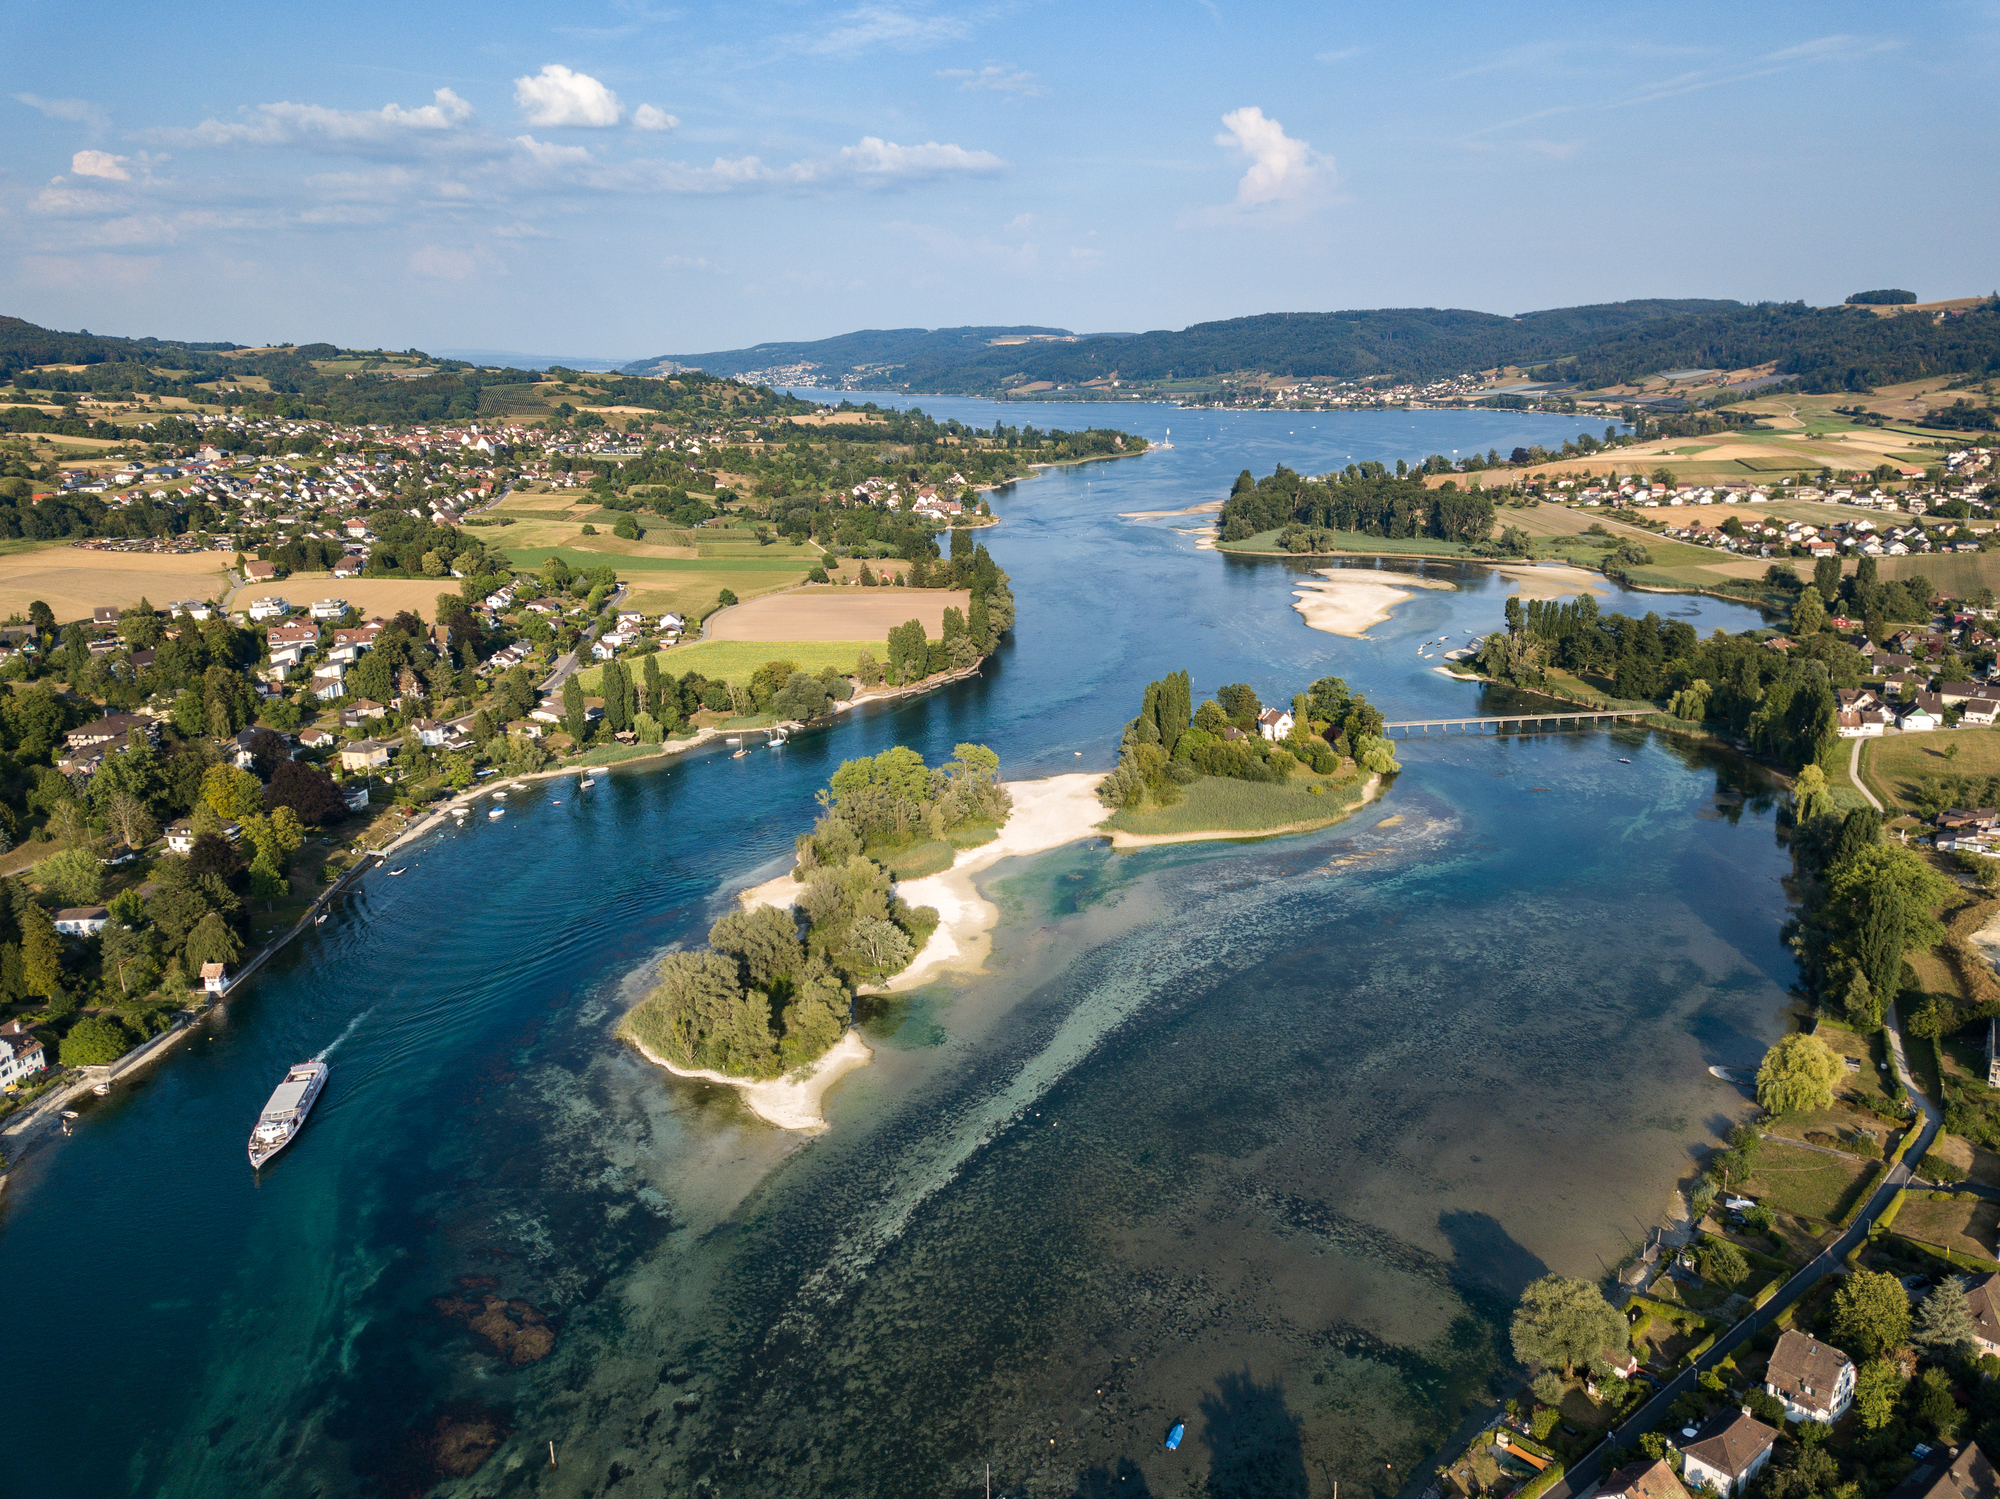 Aerial Drone photography of the beginning part of Rhine river at Lake Constance: Islet Werd, Stein am Rhein, Switzerland